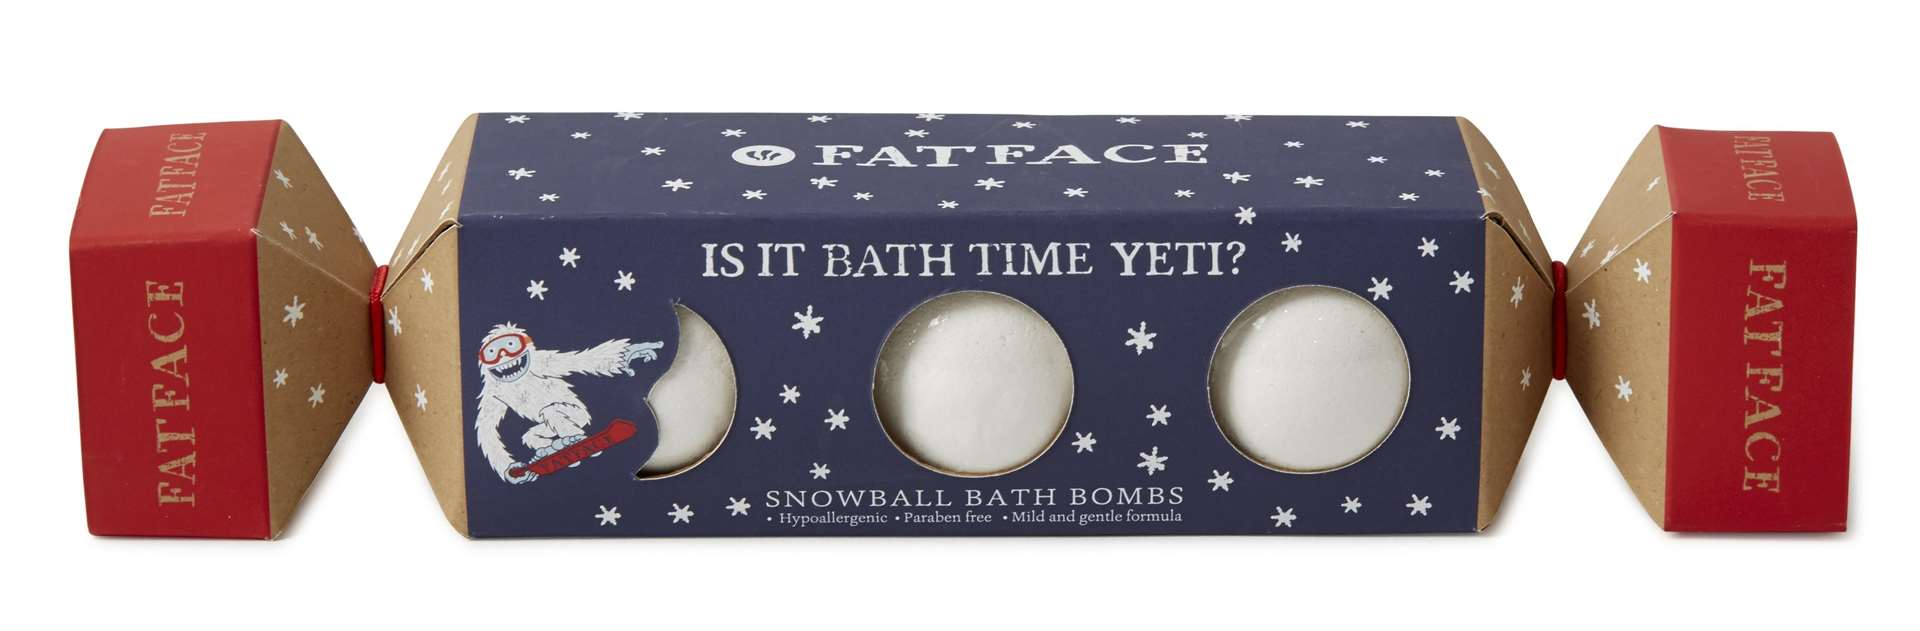 Snowball bath bombs from Fat Face, £5